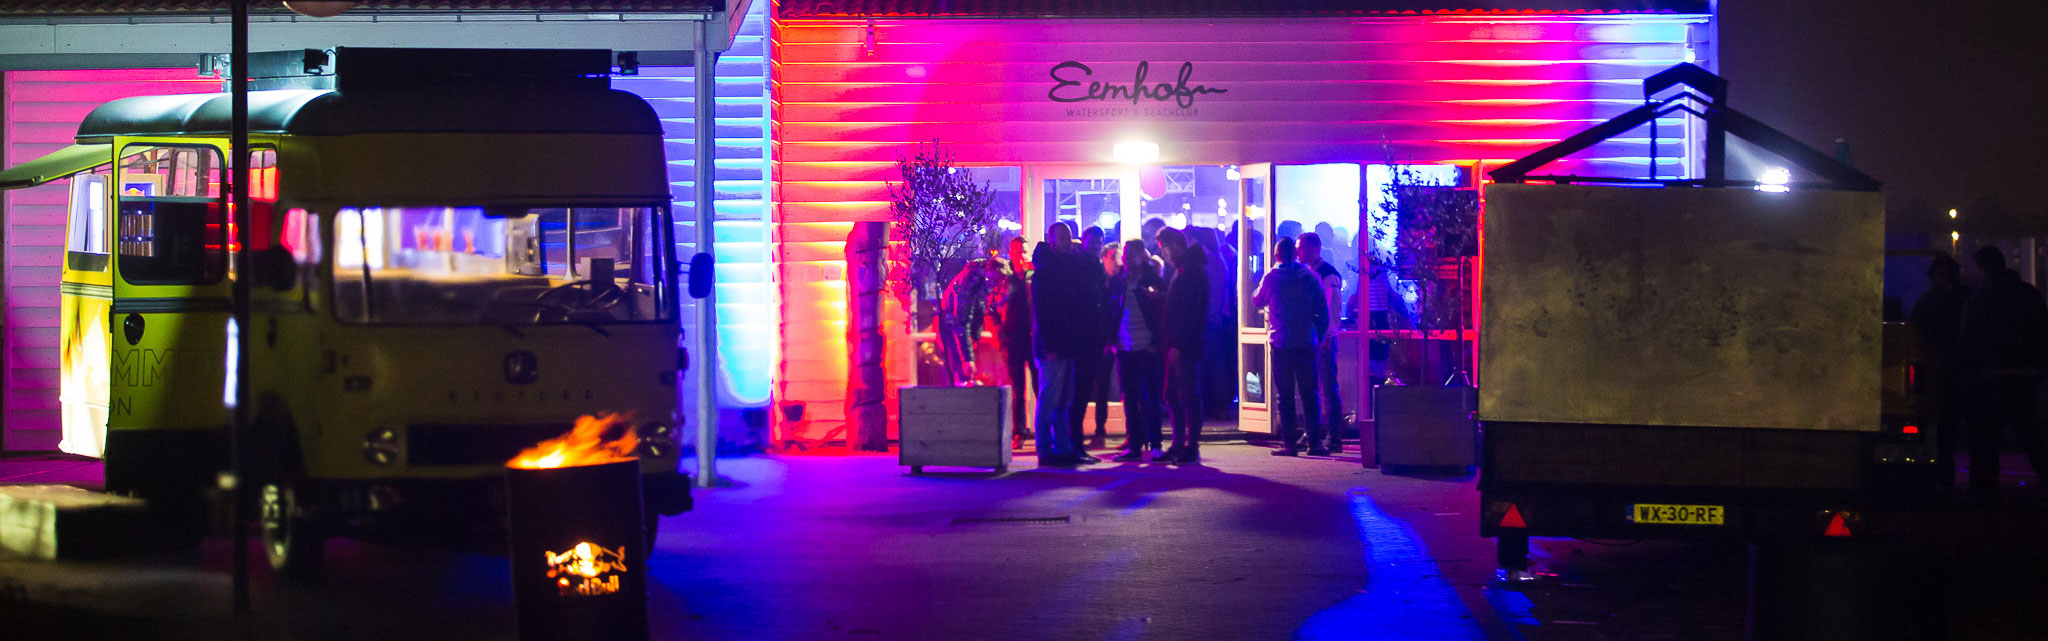 Bedrijfsfeest in de winter | Eemhof Watersport & Beachclub